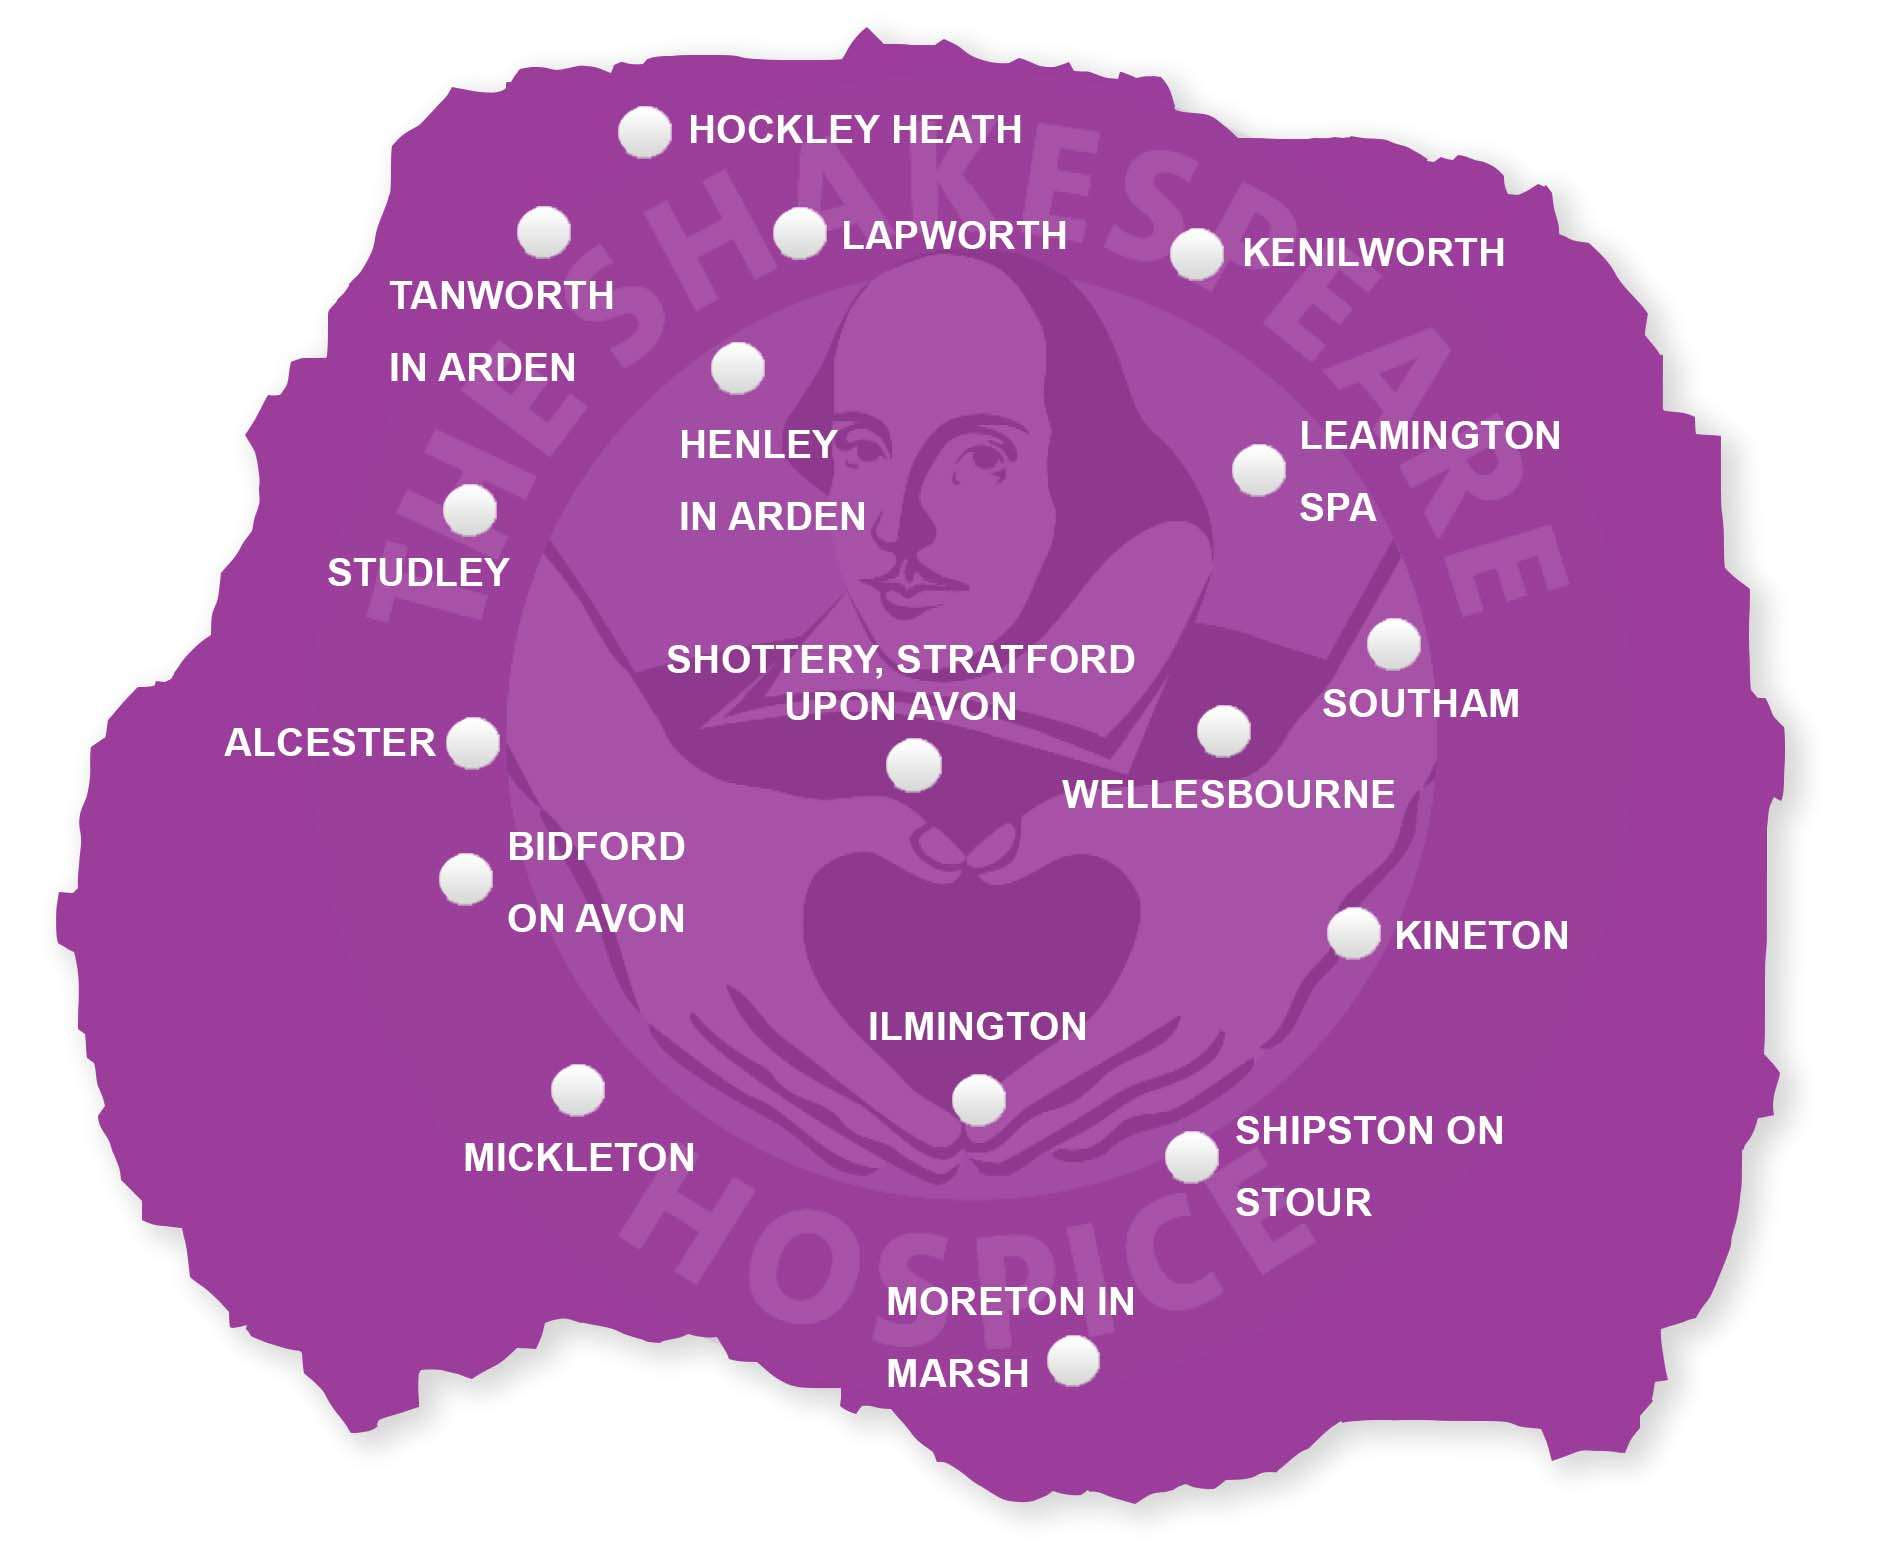 Hospice at Home map